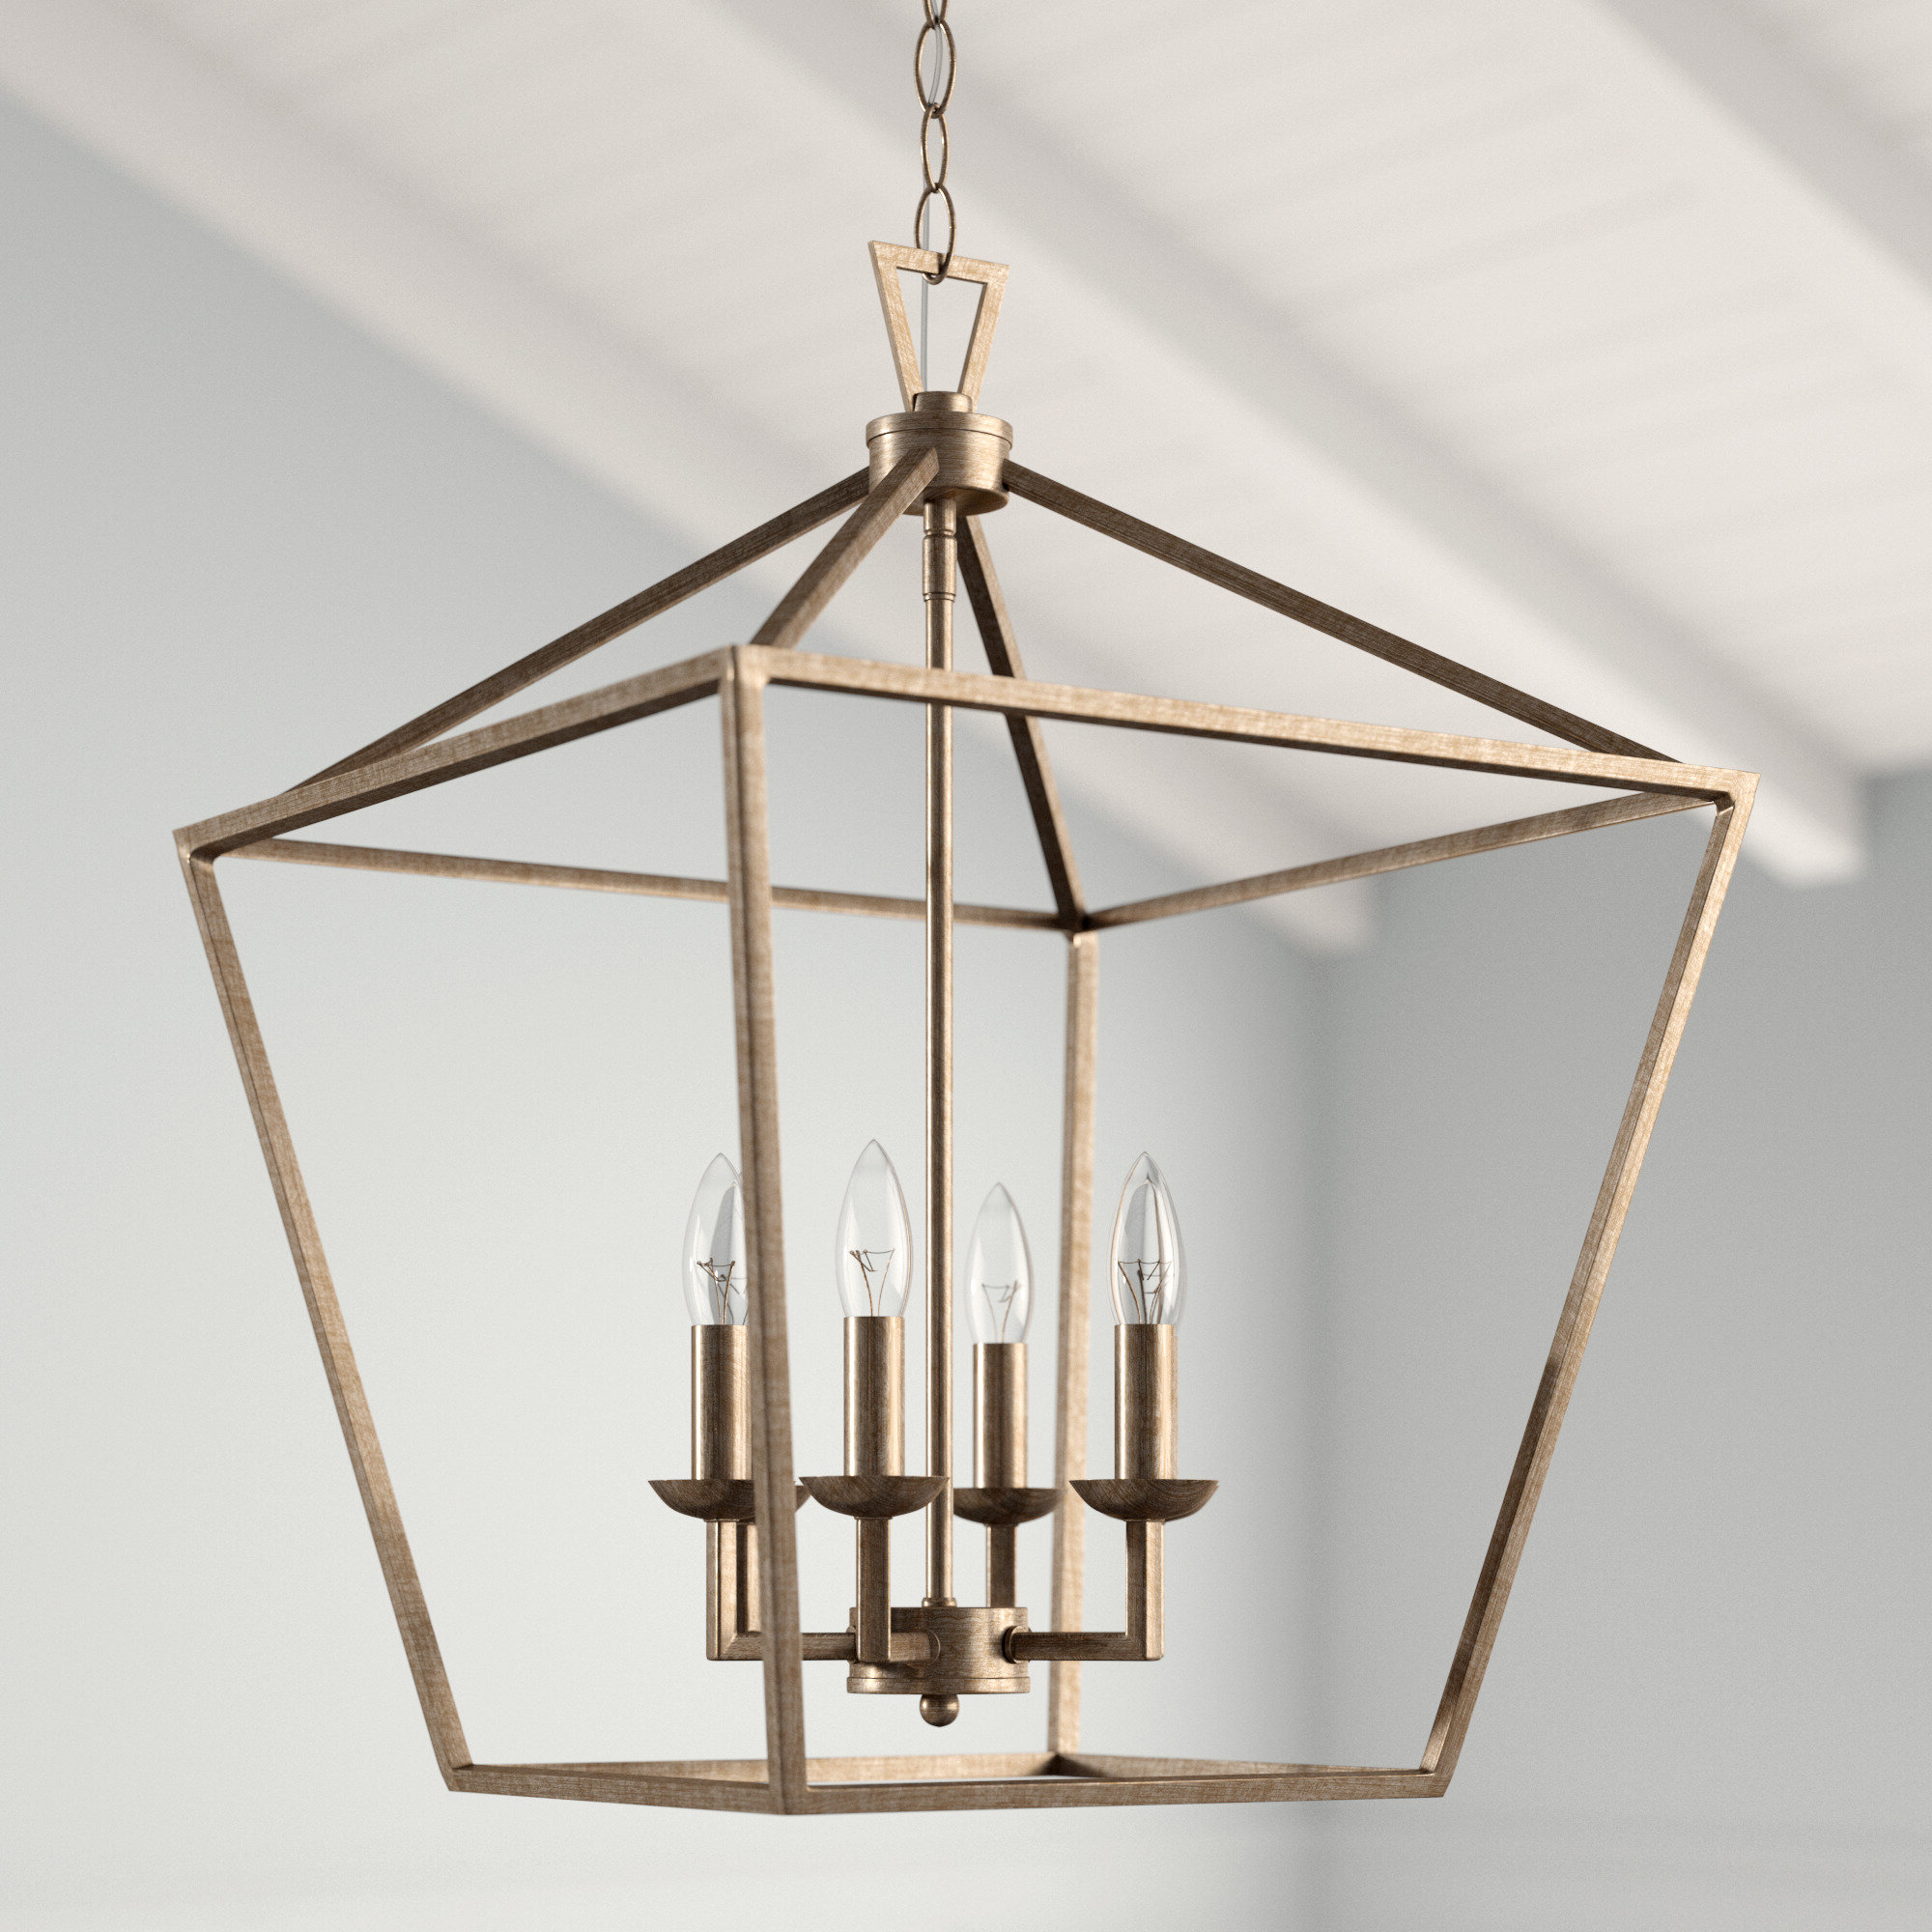 Carmen 6 Light Lantern Geometric Pendant For Latest Carmen 6 Light Lantern Geometric Pendants (View 5 of 20)